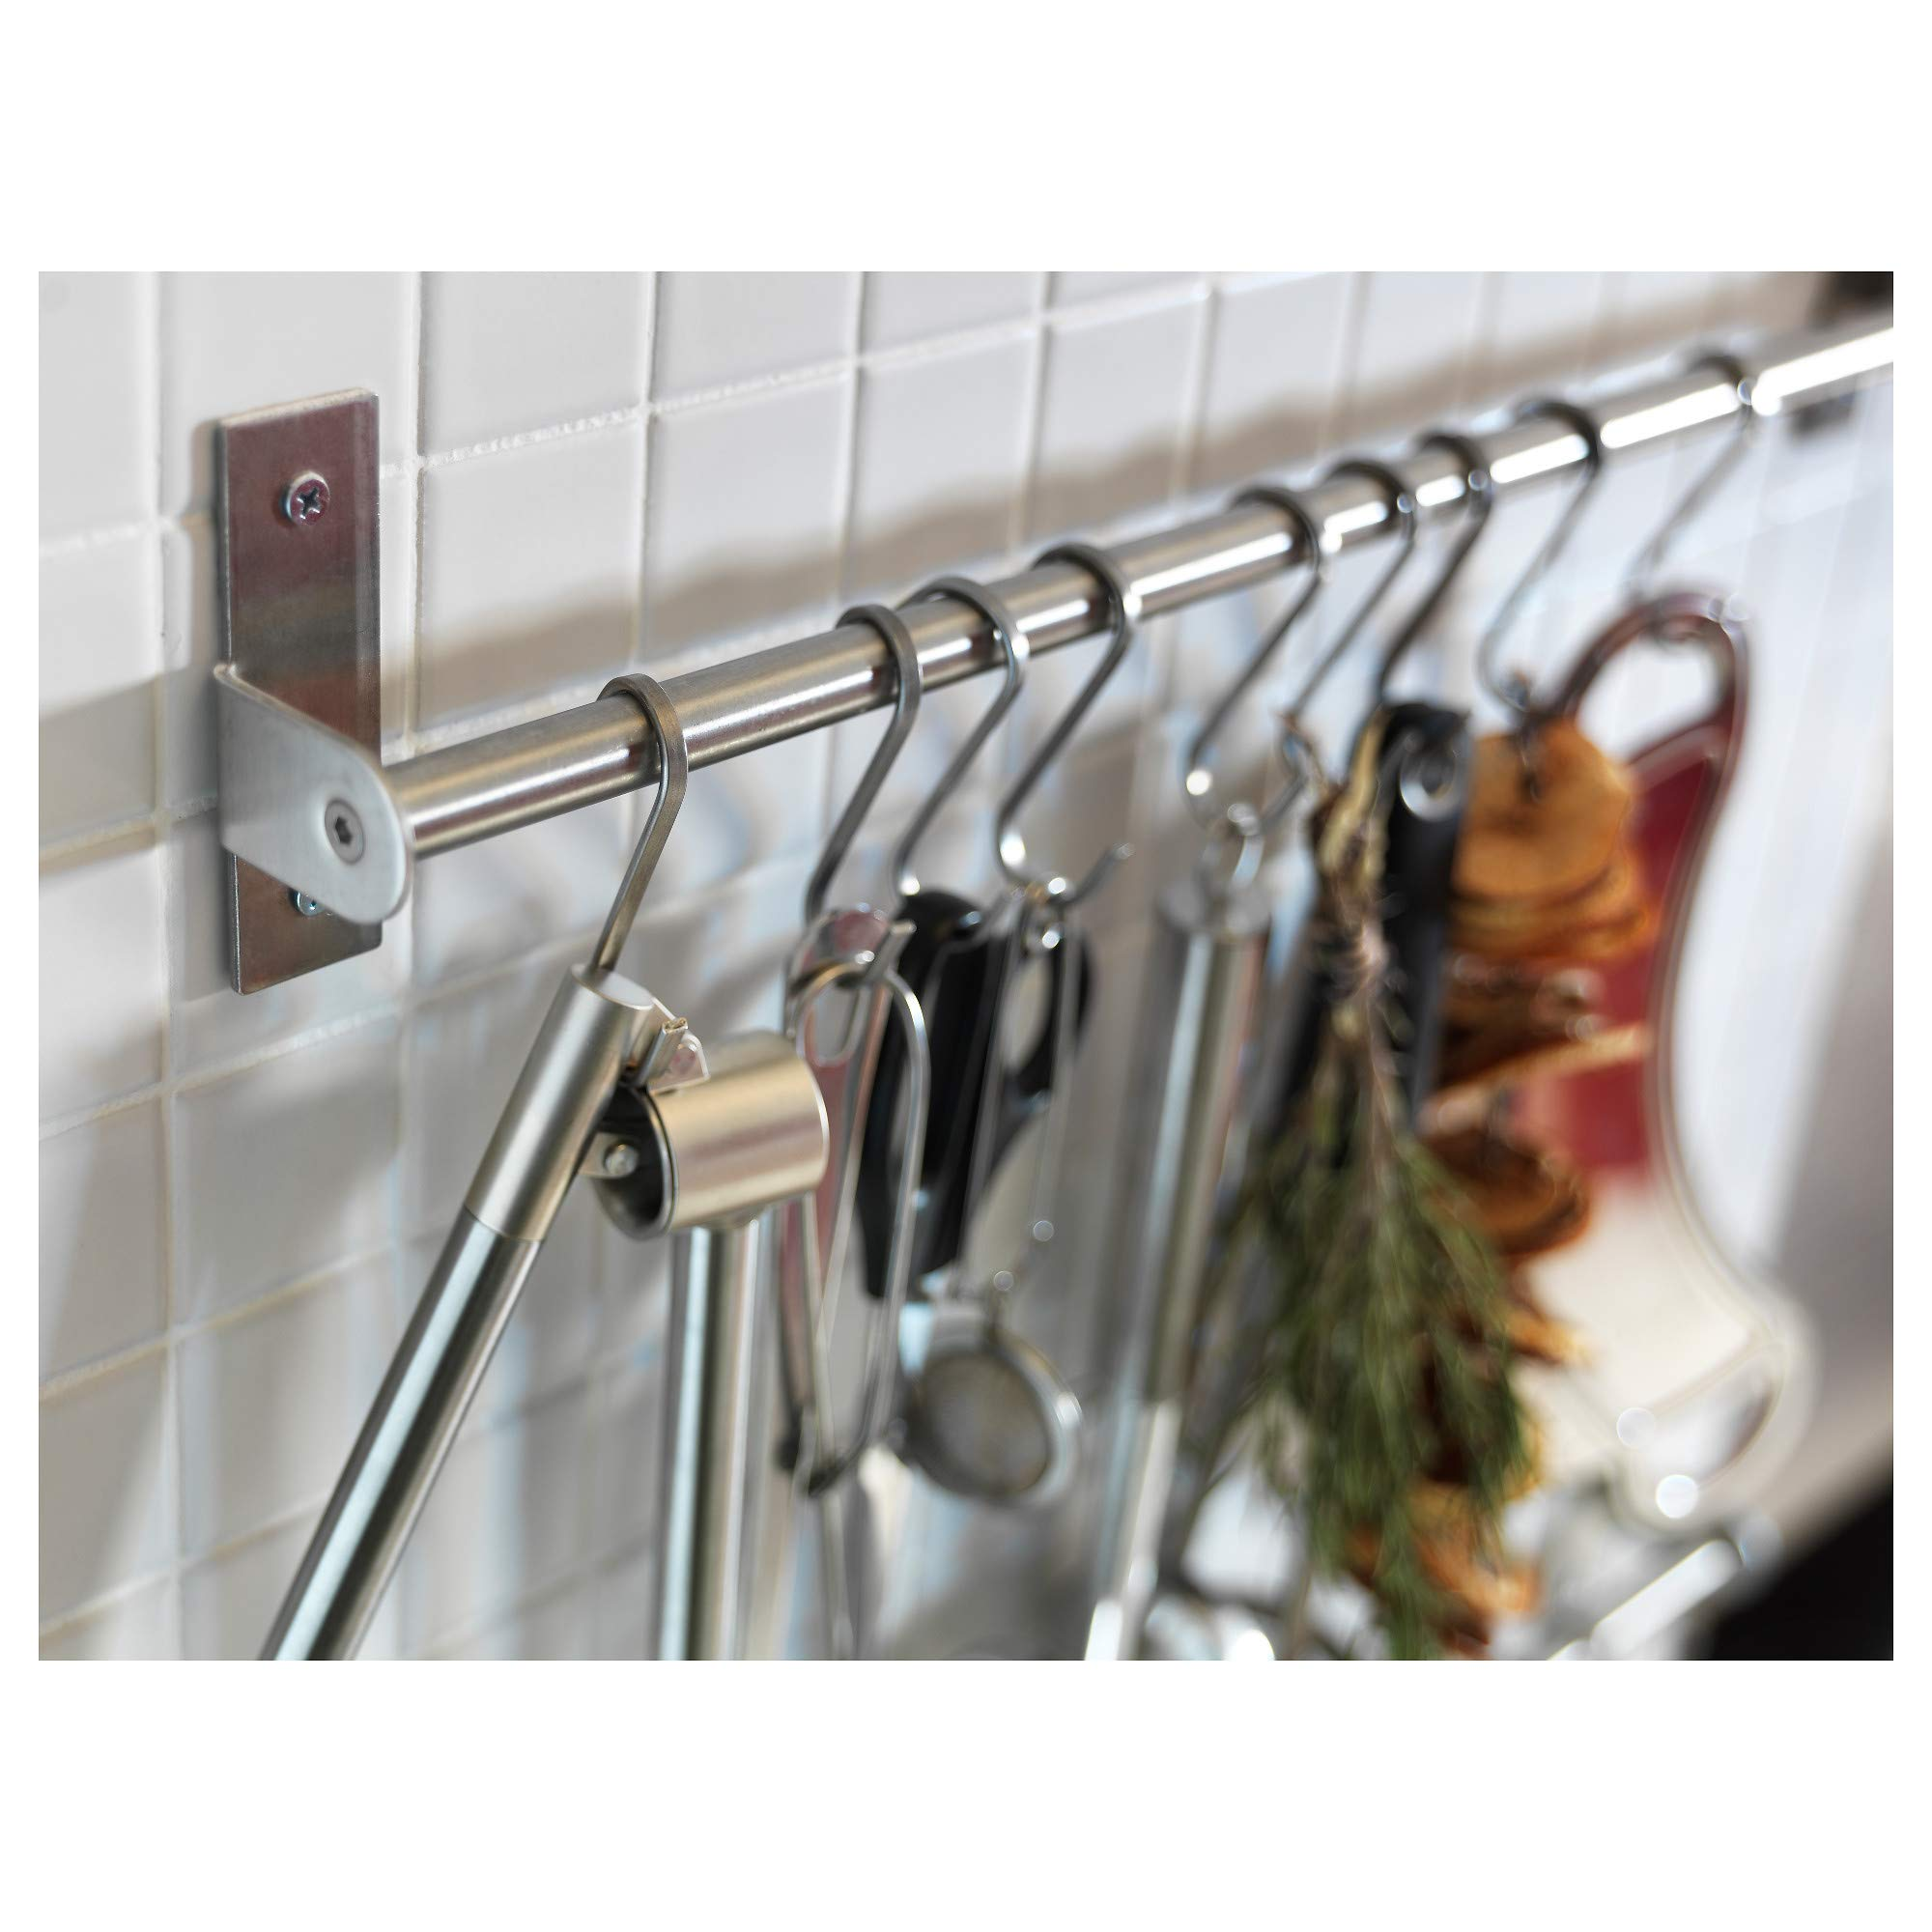 S Shaped Hanging Hooks for Kitchen Bedroom Bathroom Storage Garden Cabinet and Office, 8-Pack Size Medium Heavy Duty Superior Quality